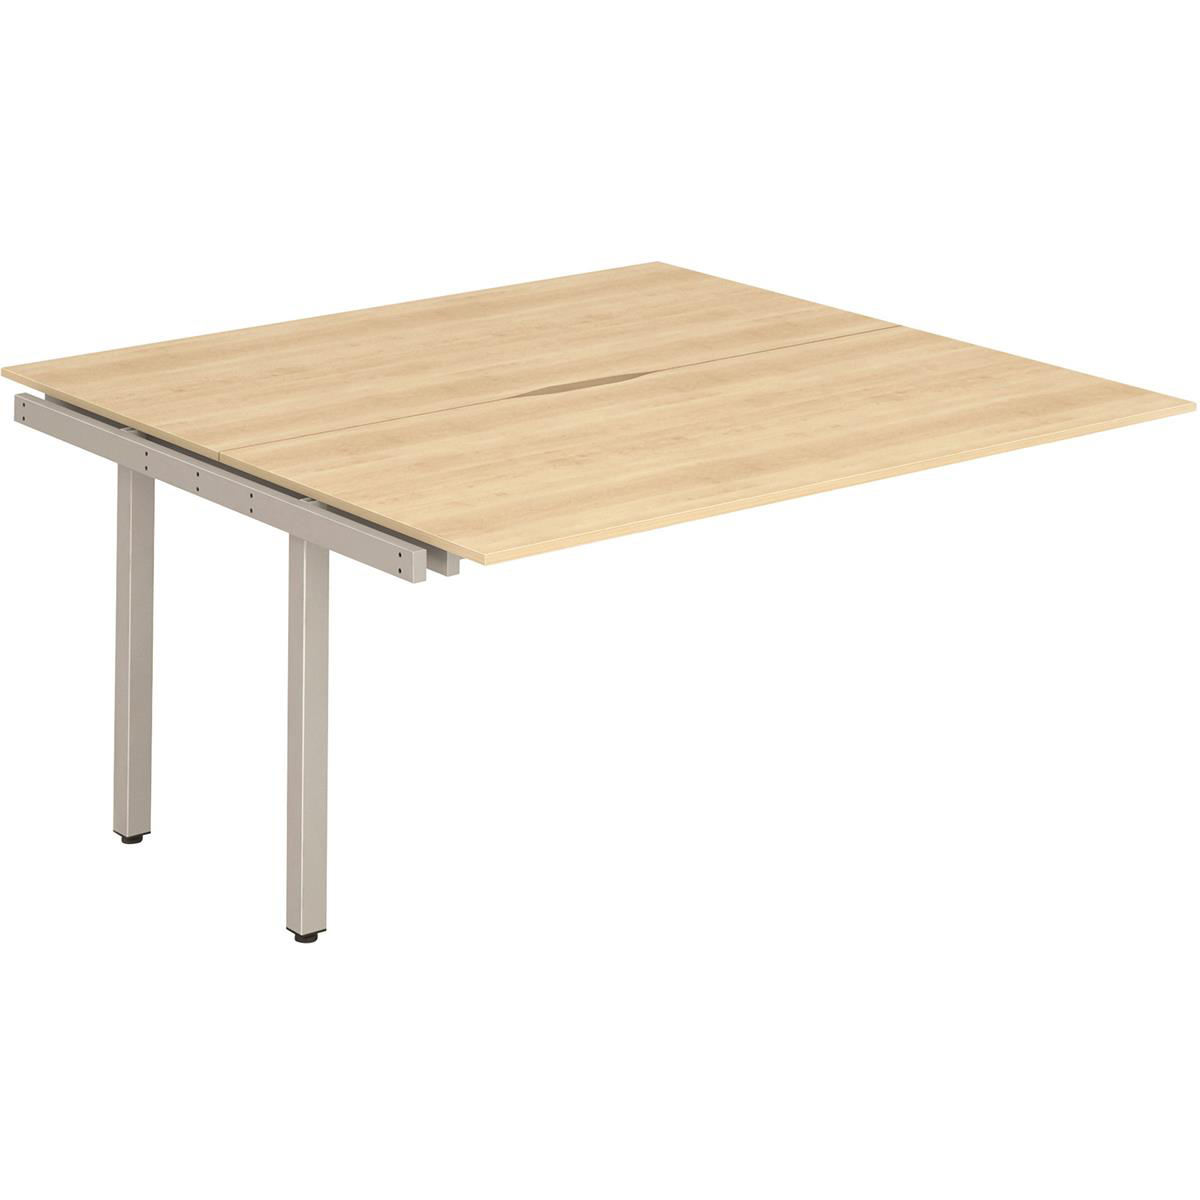 Trexus Bench Desk Double Extension Back to Back Configuration Silver Leg 1200x1600mm Maple Ref BE216